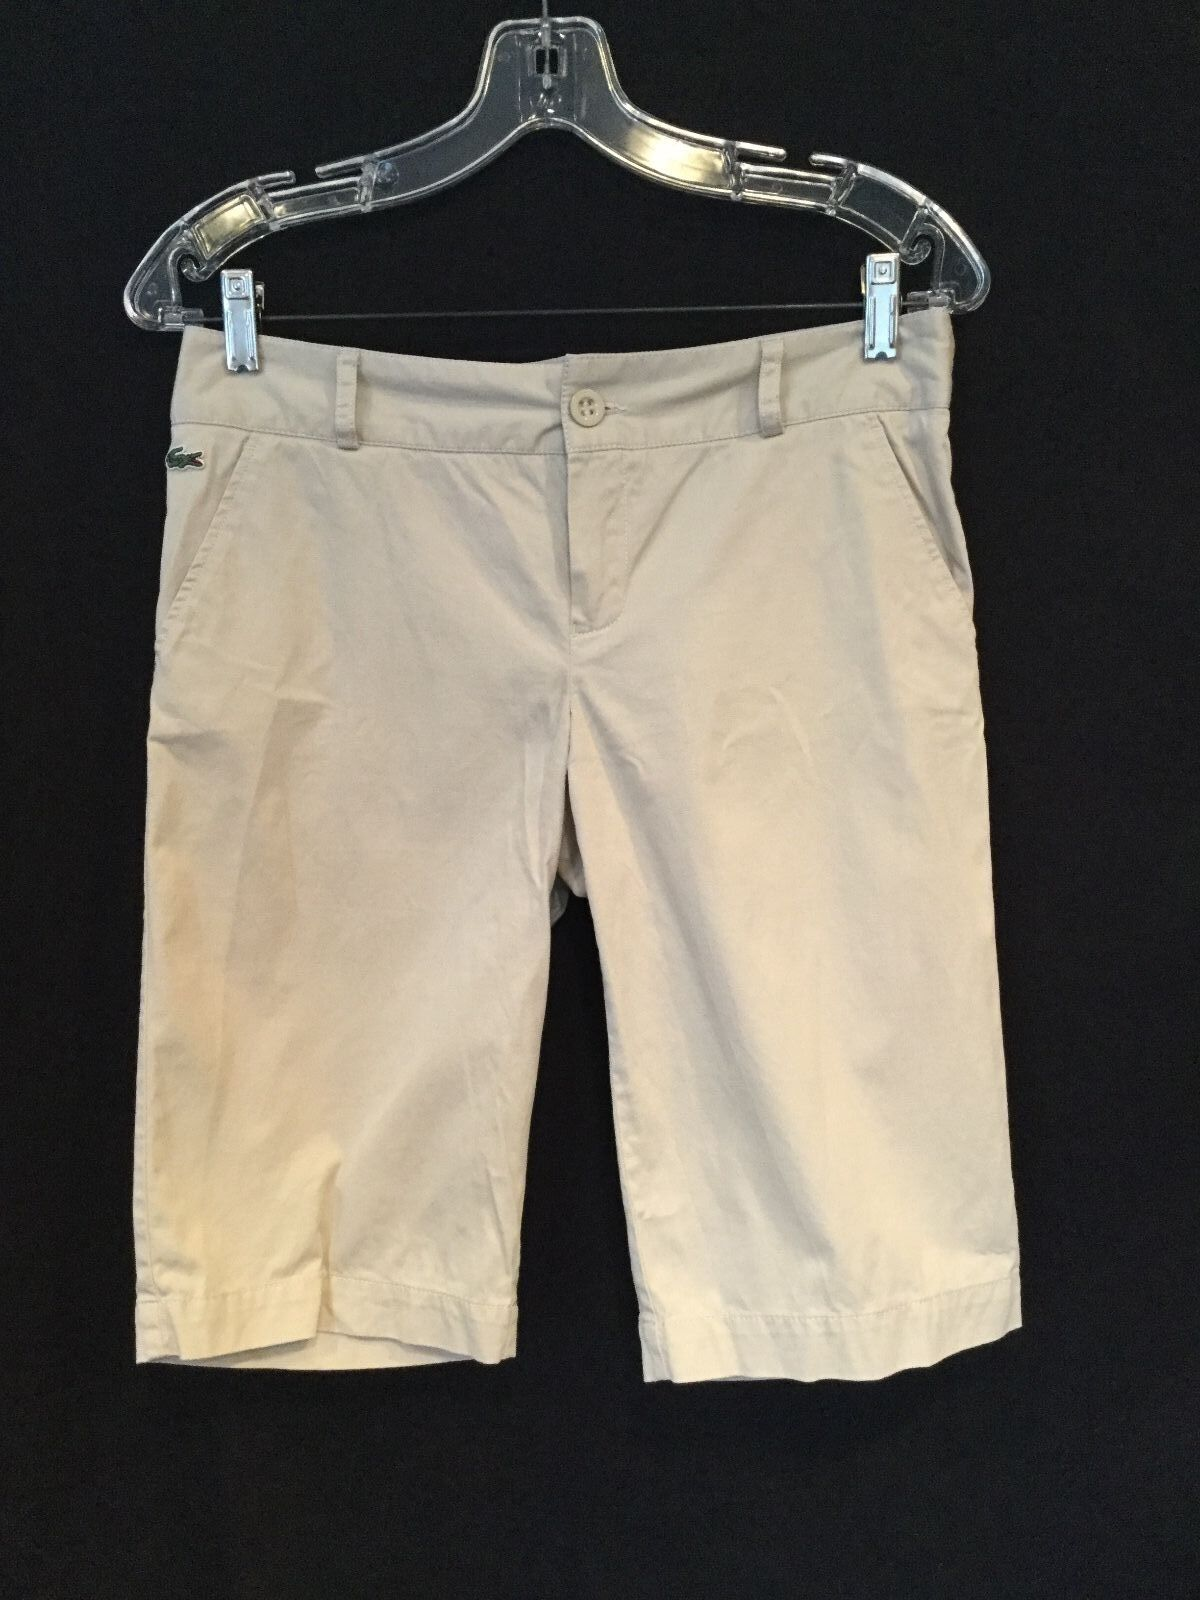 Lacoste - Women's Walking Shorts - Toasted Oat Beige - Size 38 - Great Condition